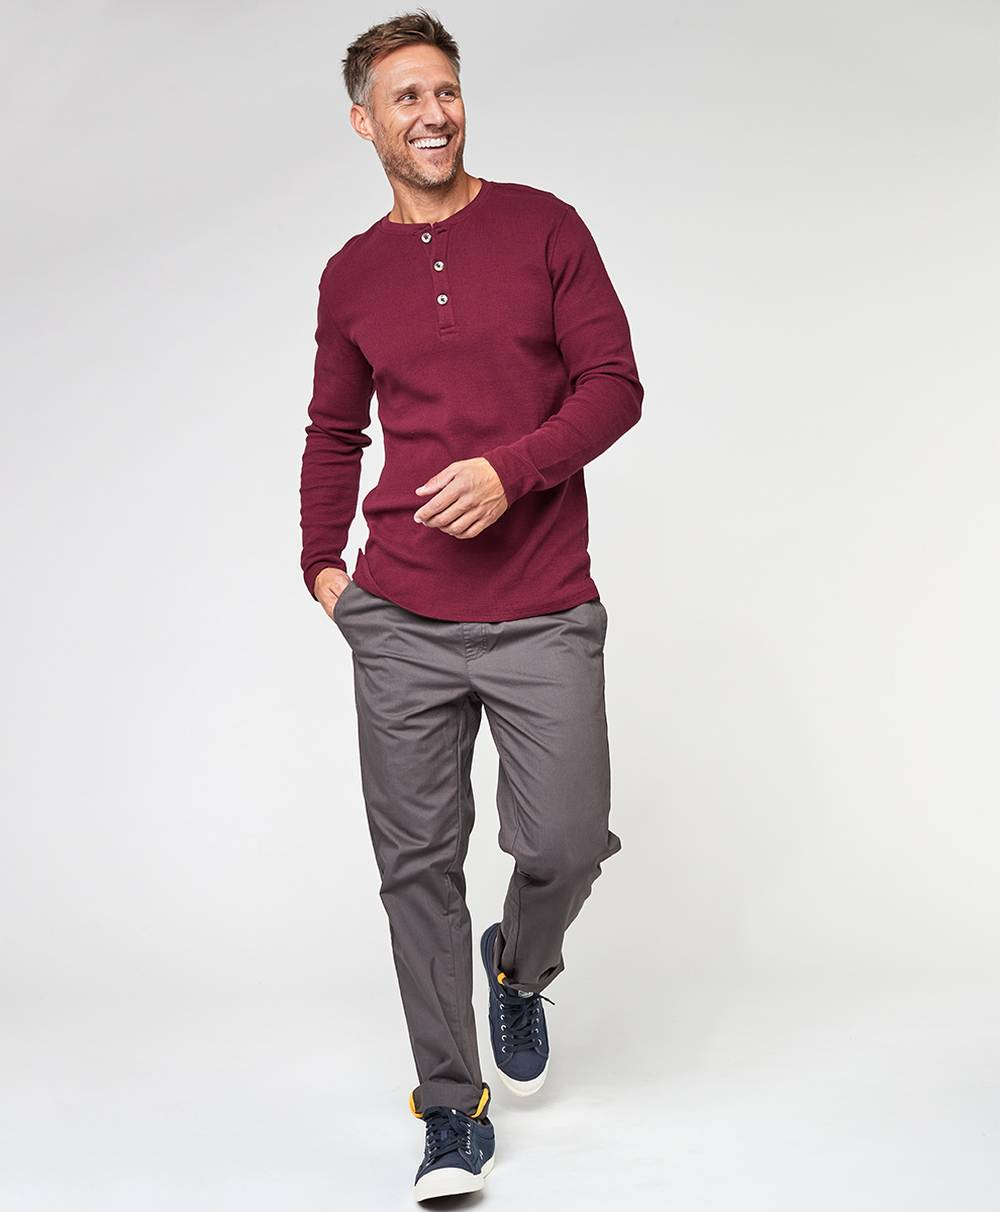 pact ethical mens clothing brands